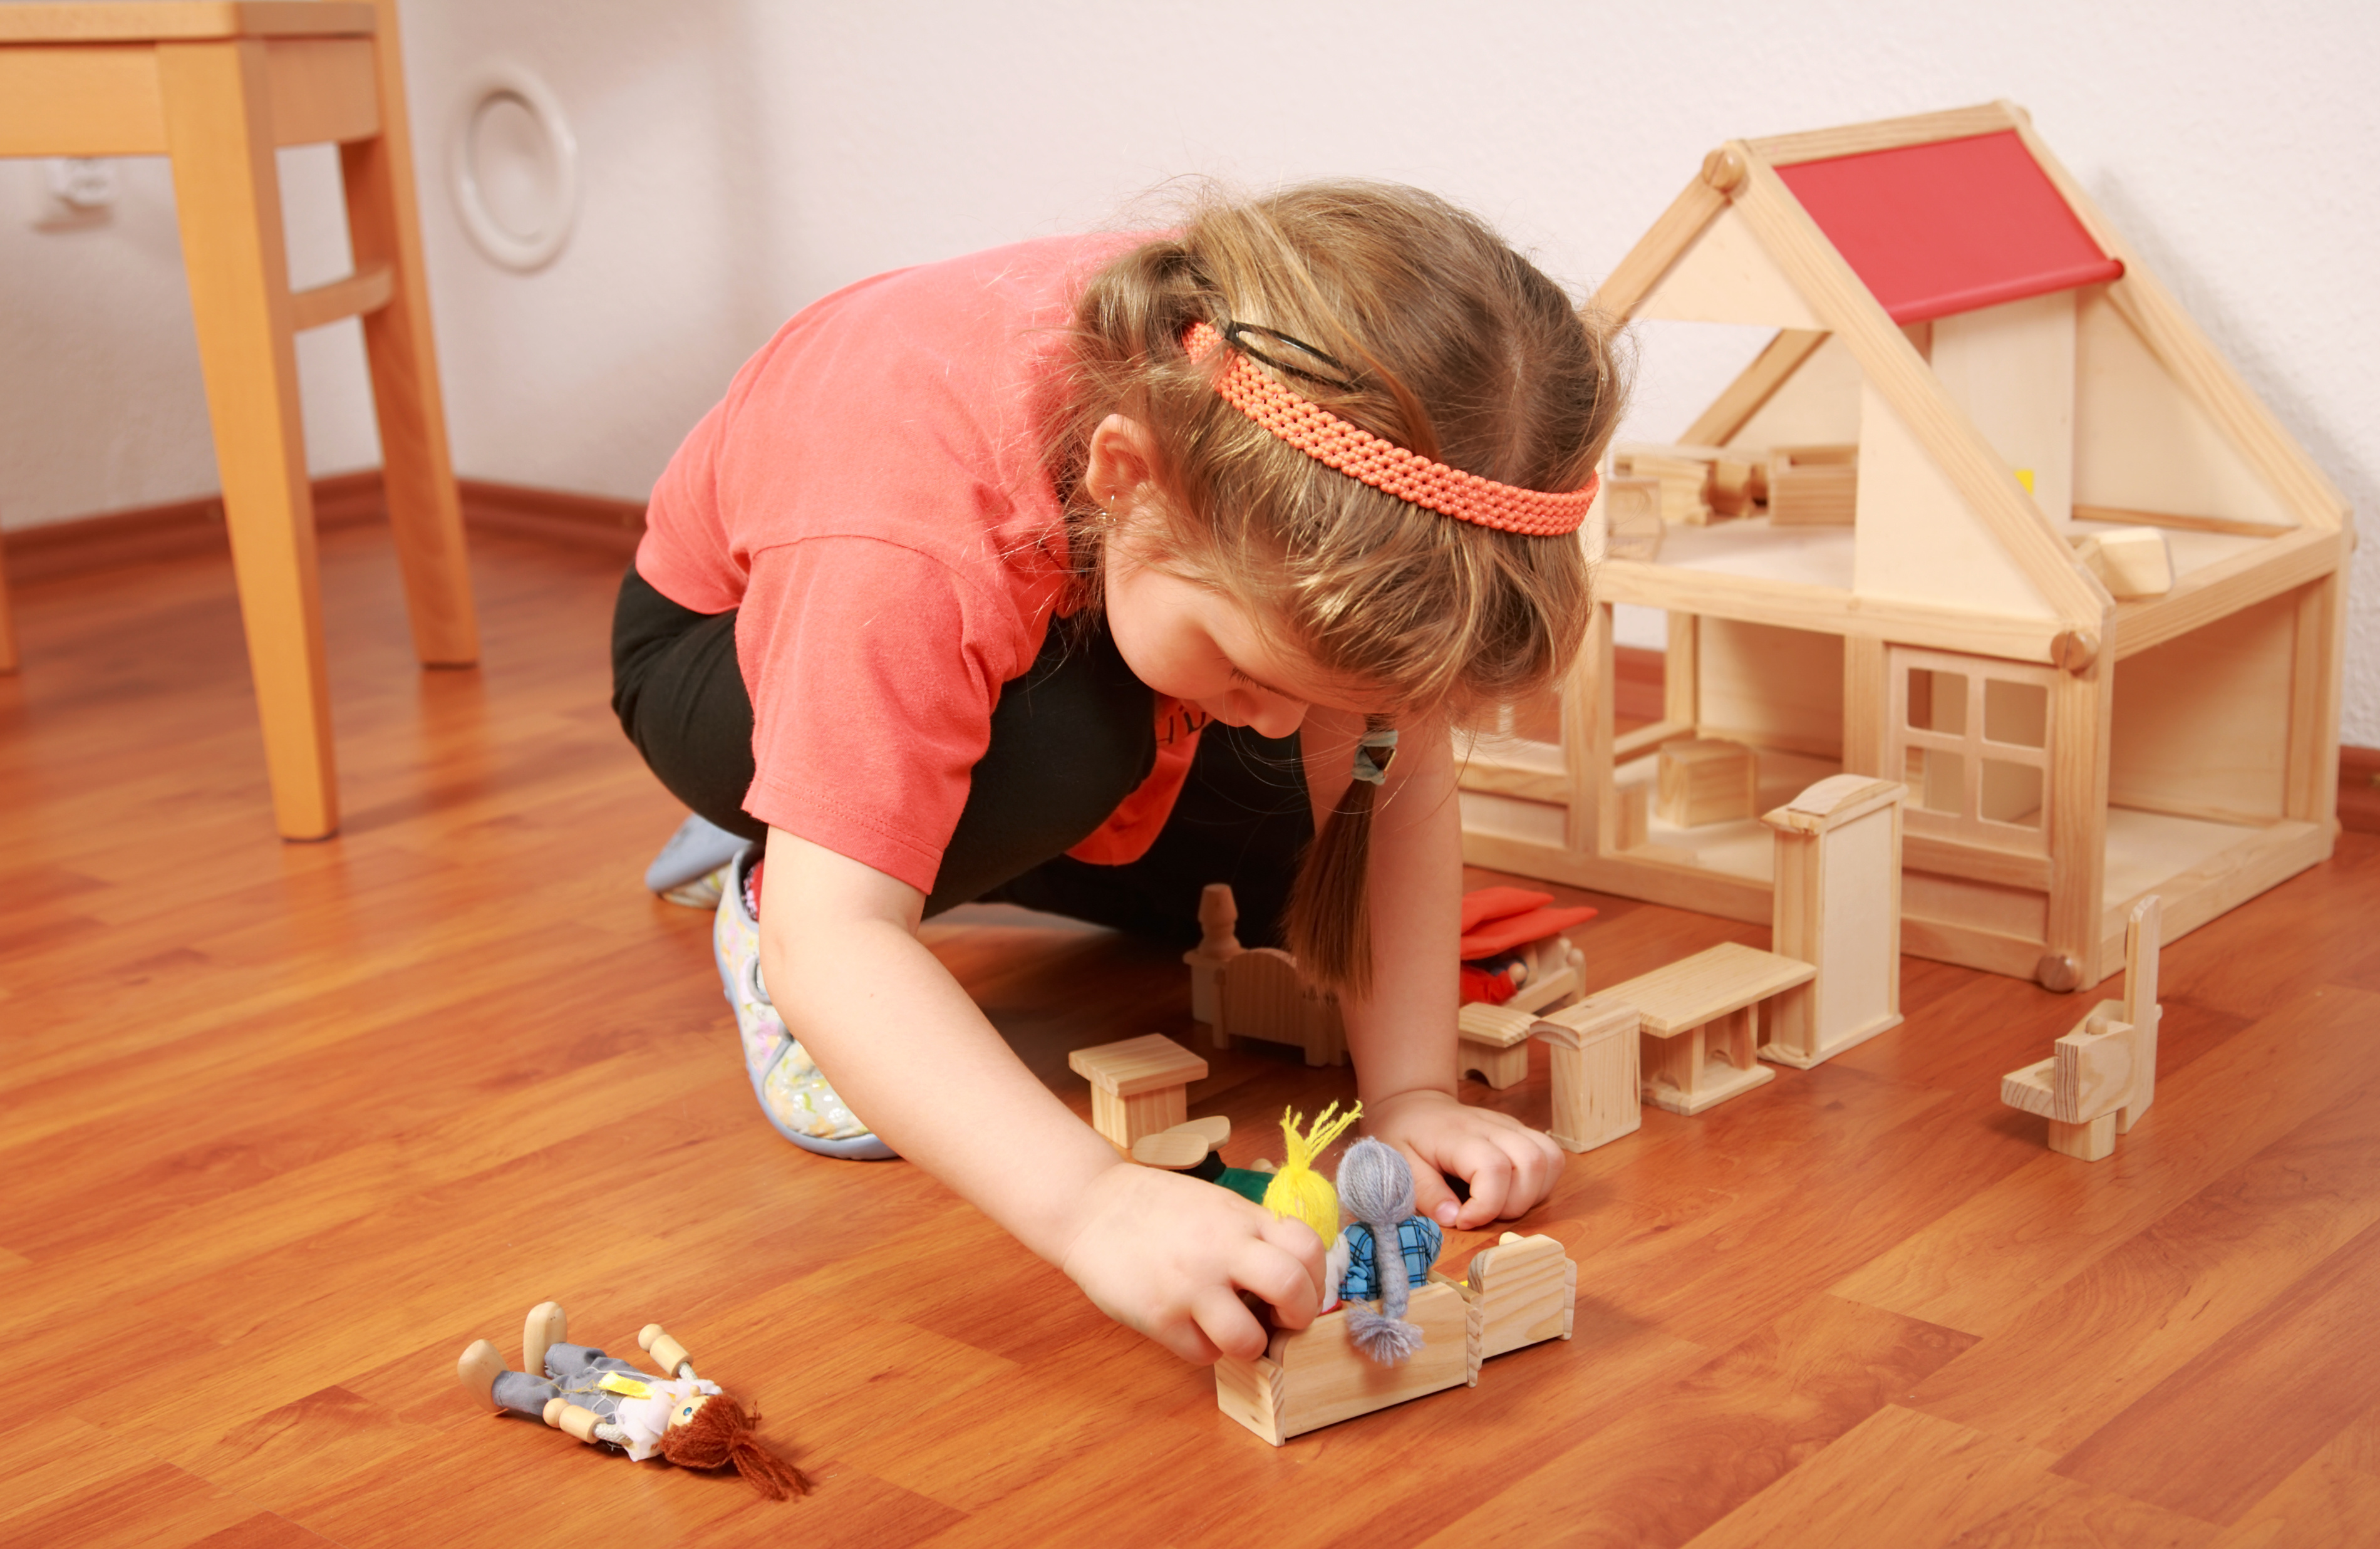 Smart home design for families with kids